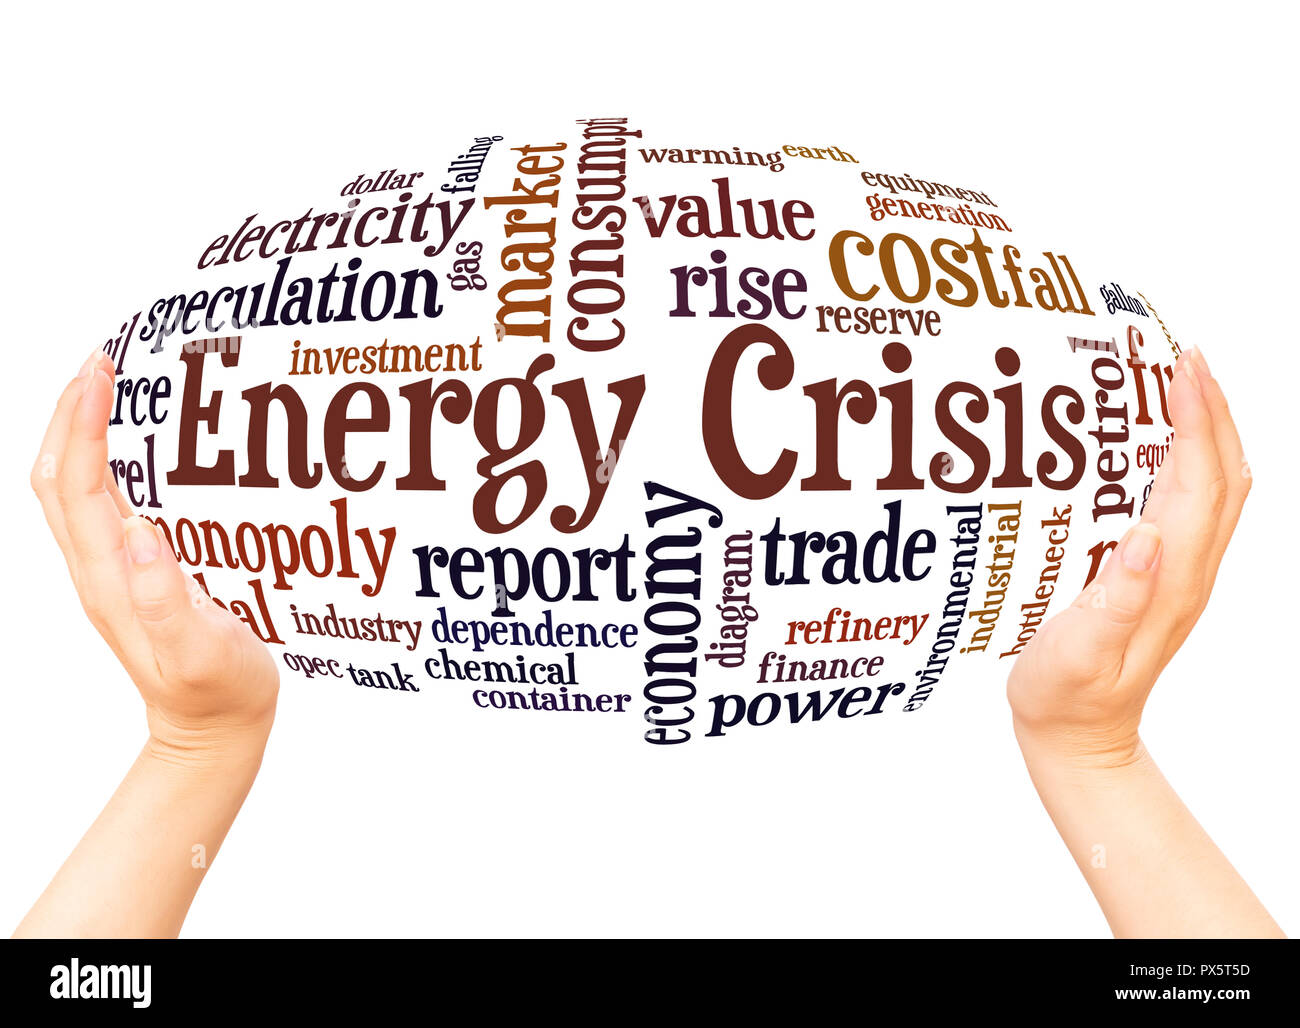 Energy crisis word cloud hand sphere concept on white background. - Stock Image